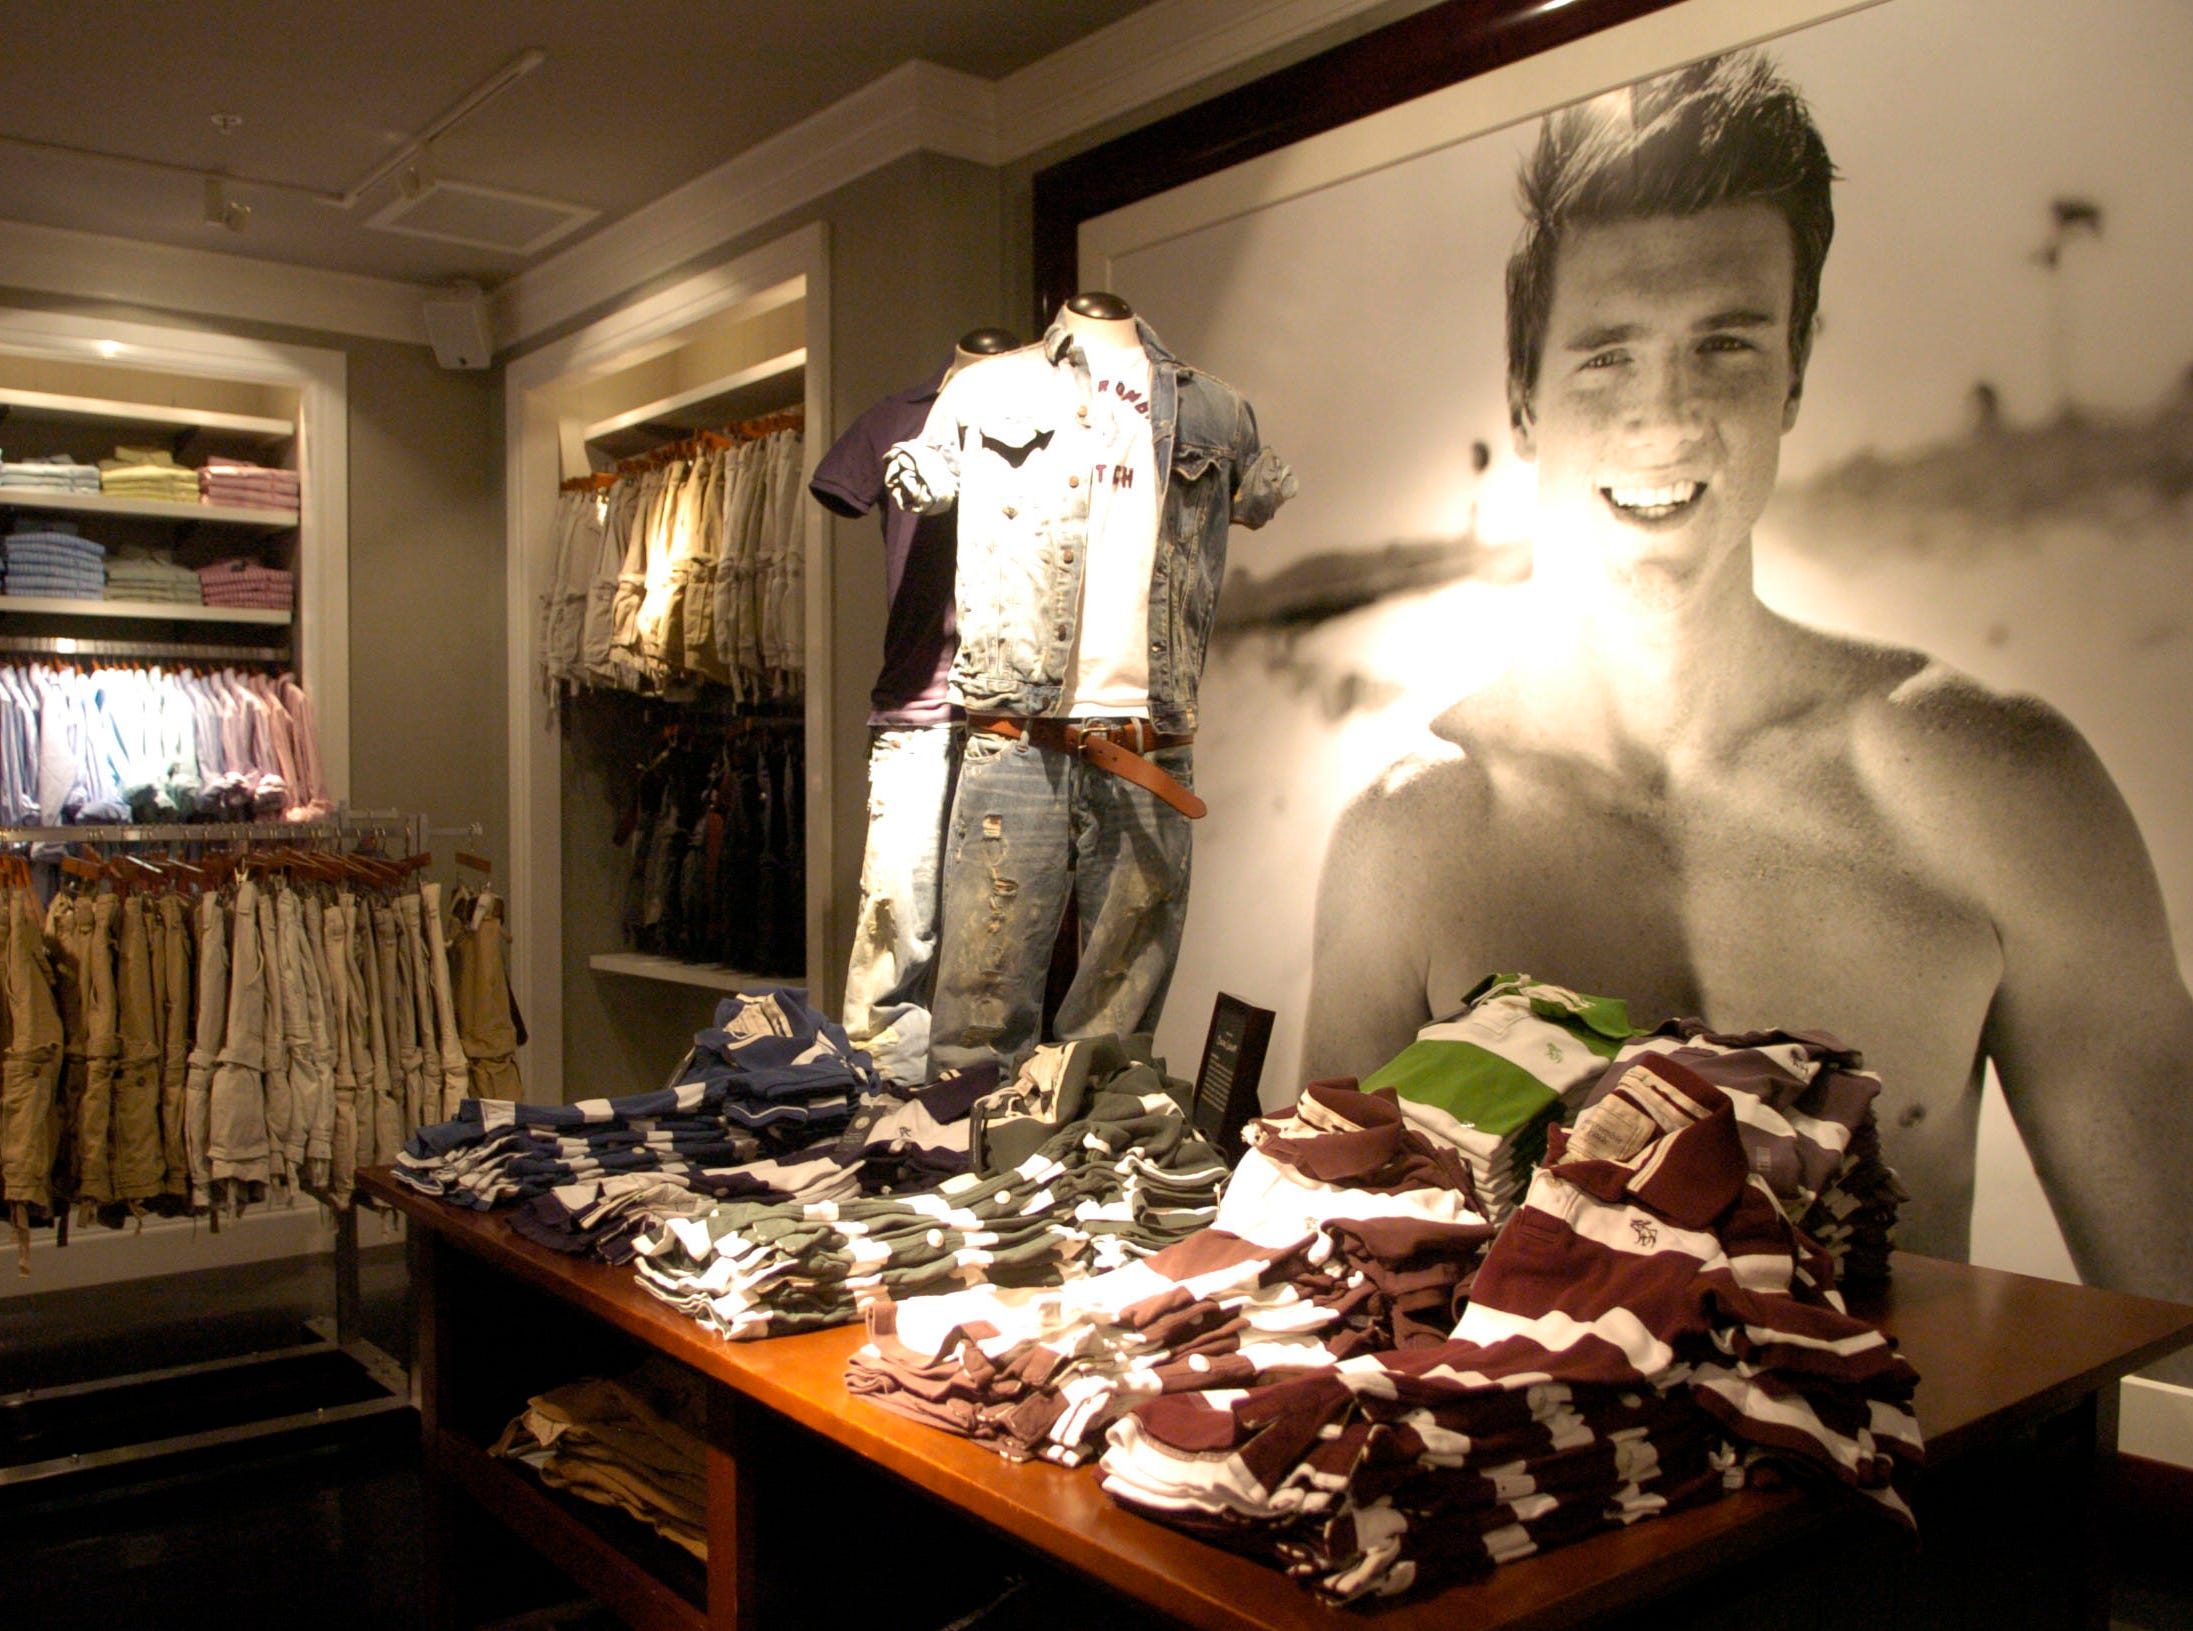 Clothing on display at the Abercrombie & Fitch clothing store in West Town Mall. 2006